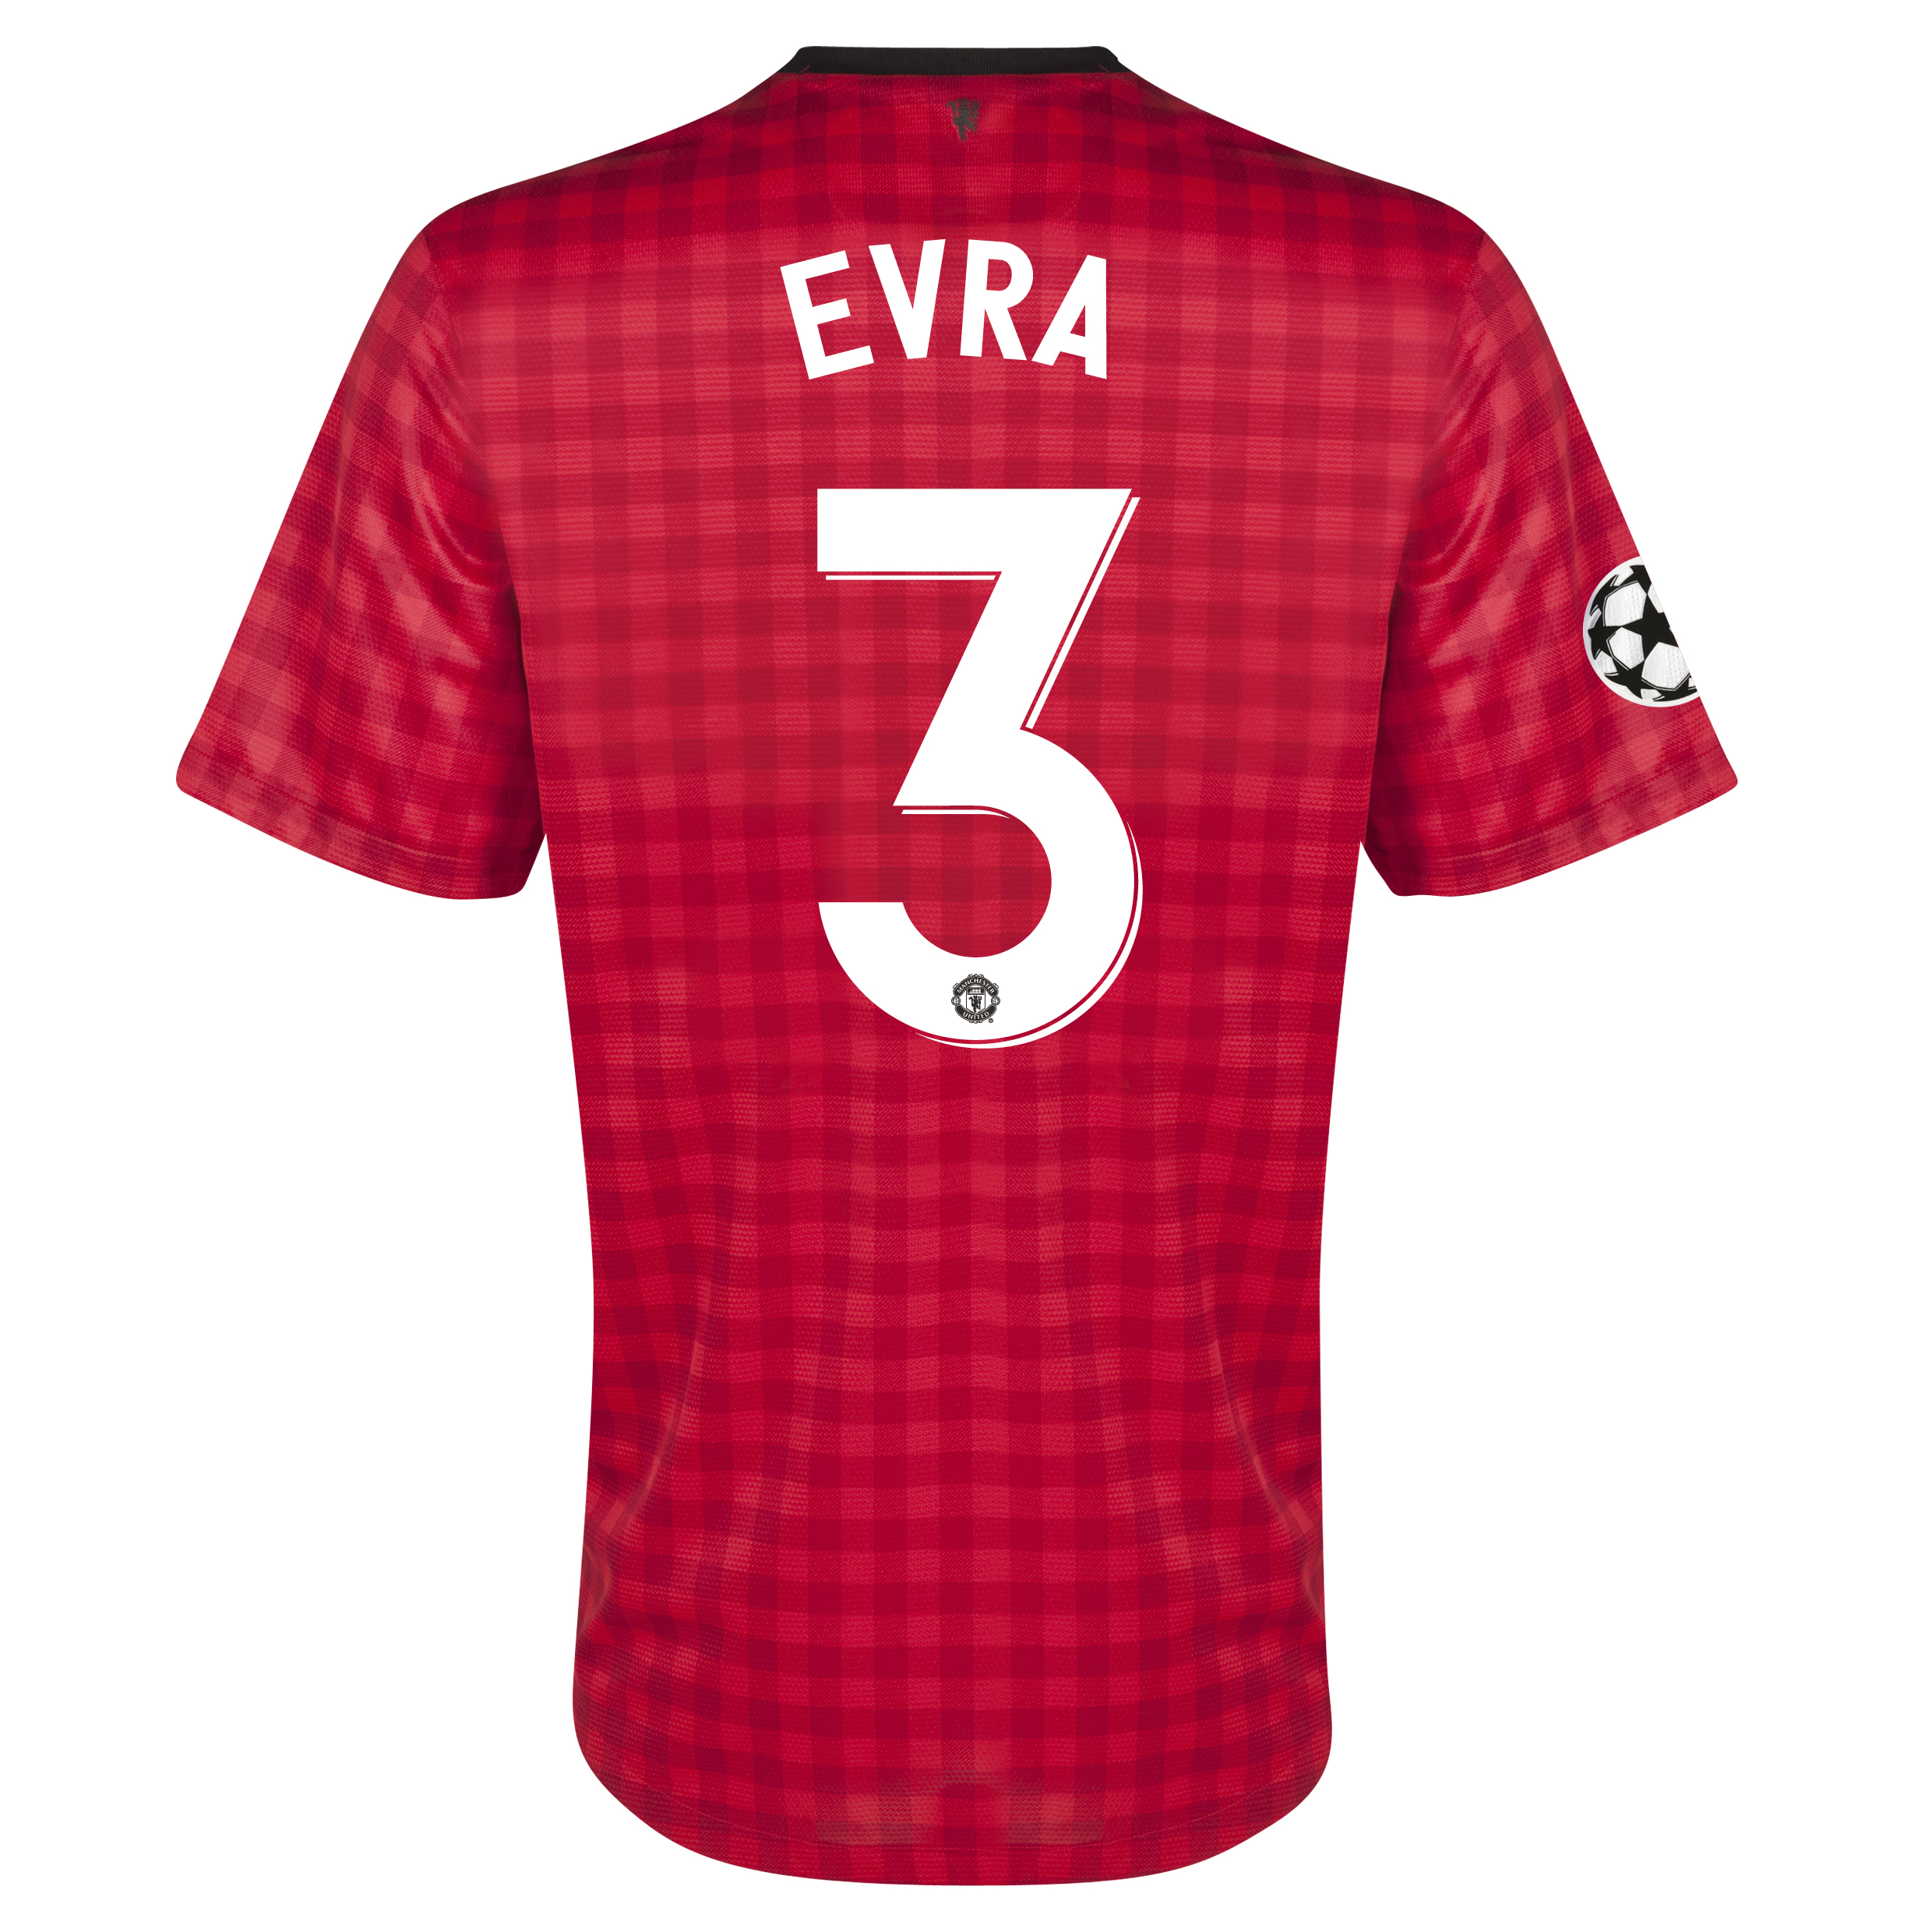 Man United UEFA Champions League Home Shirt 2012/13  - Youths with Evra 3 printing